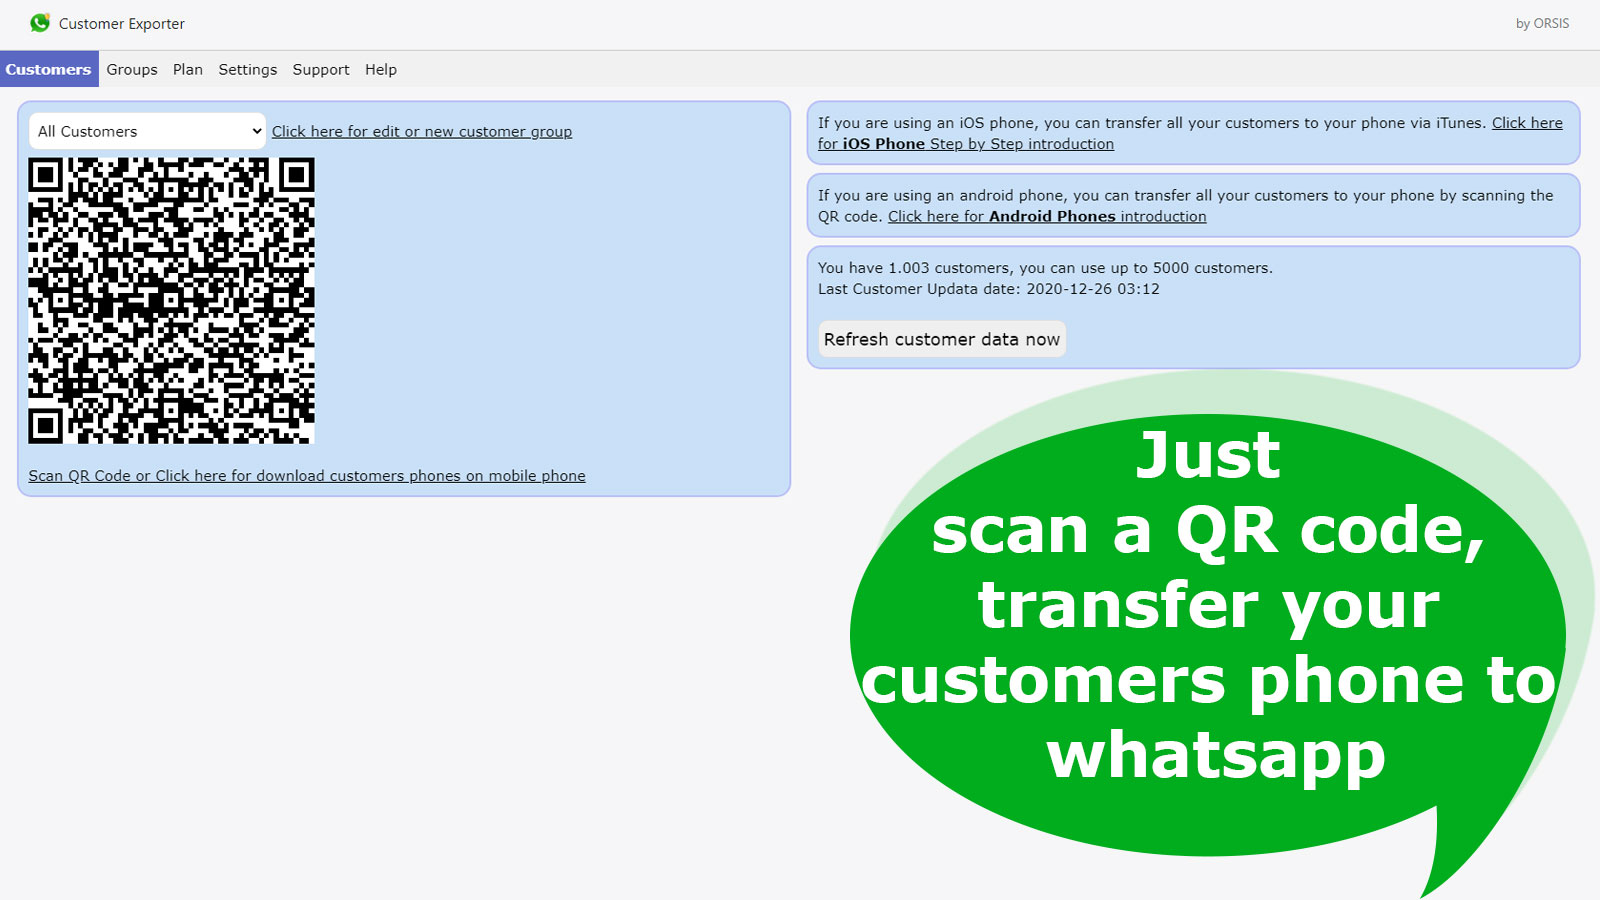 Just scan a QR code, transfer your customers phone to whatsapp